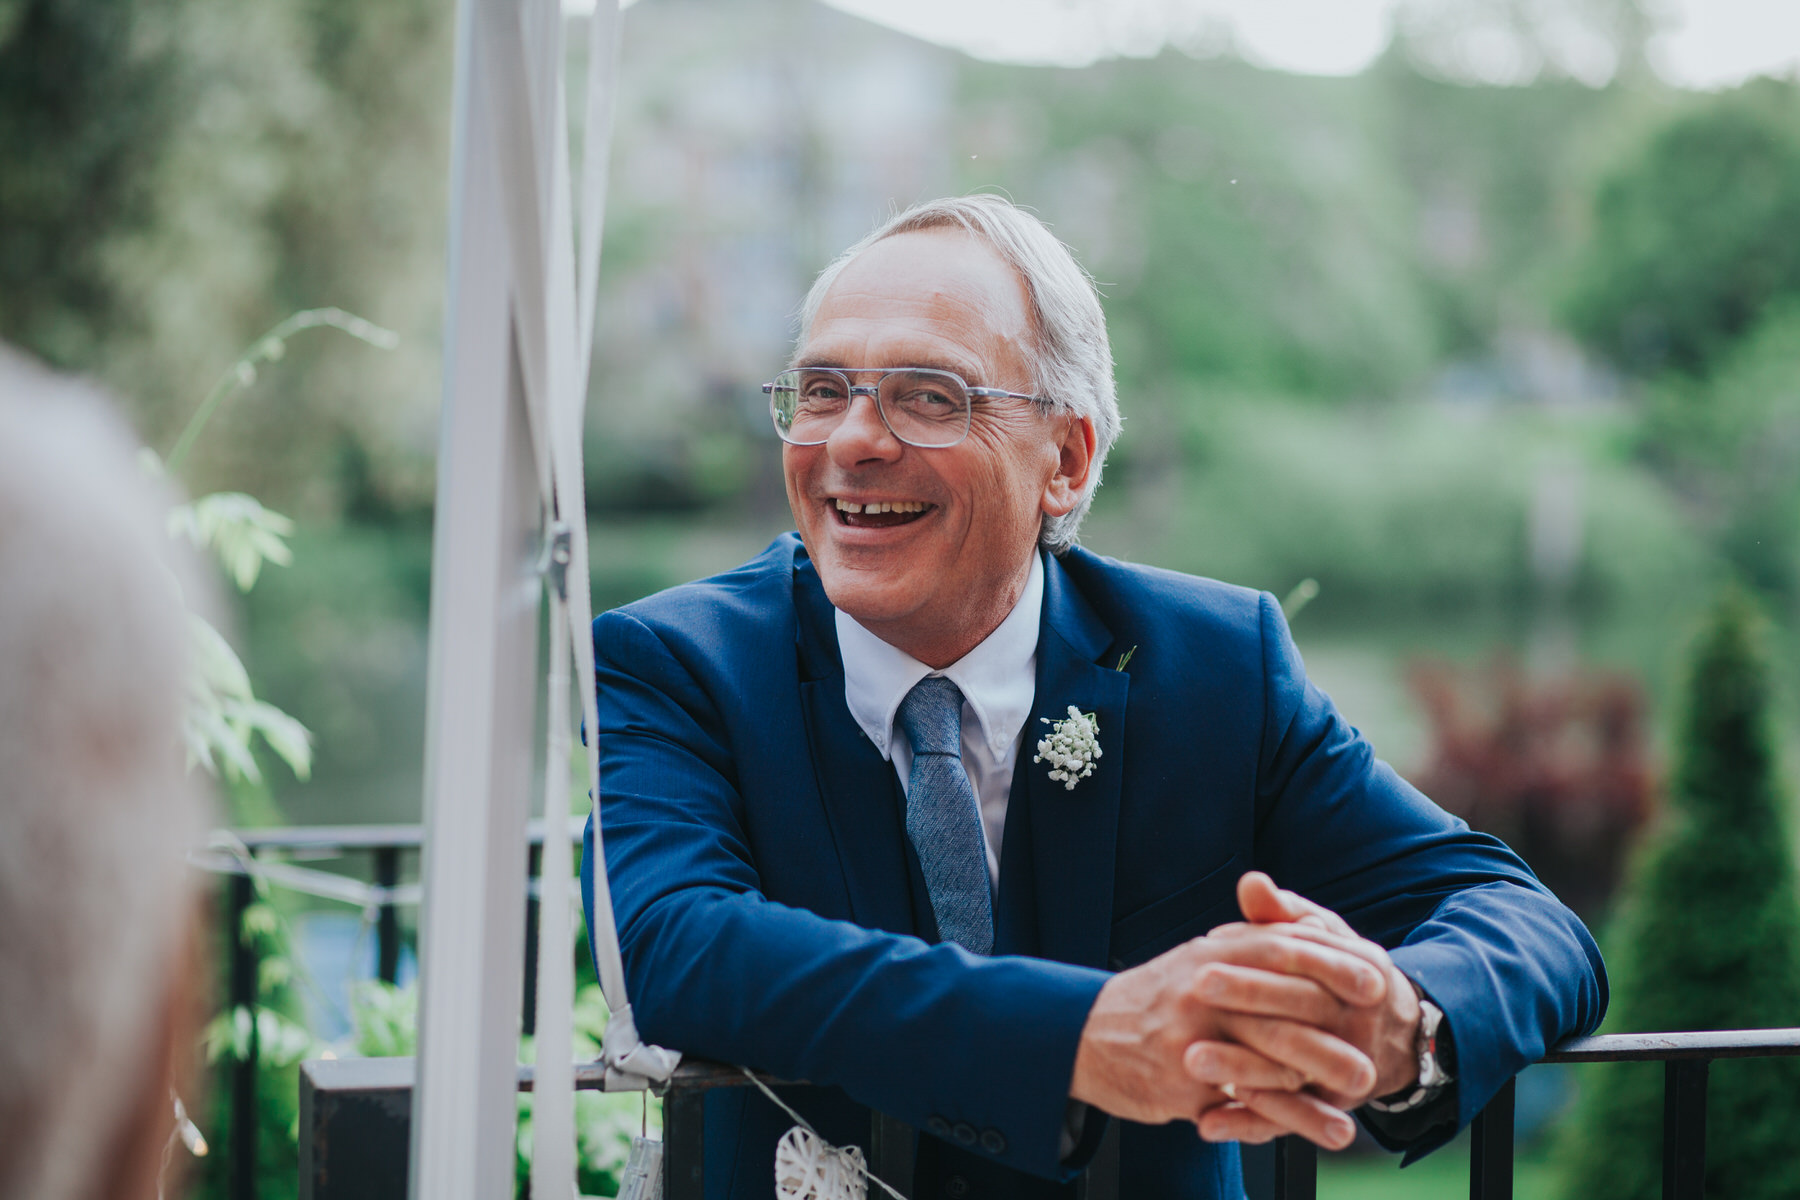 brides father smiling Bingham Hotel wedding.jpg